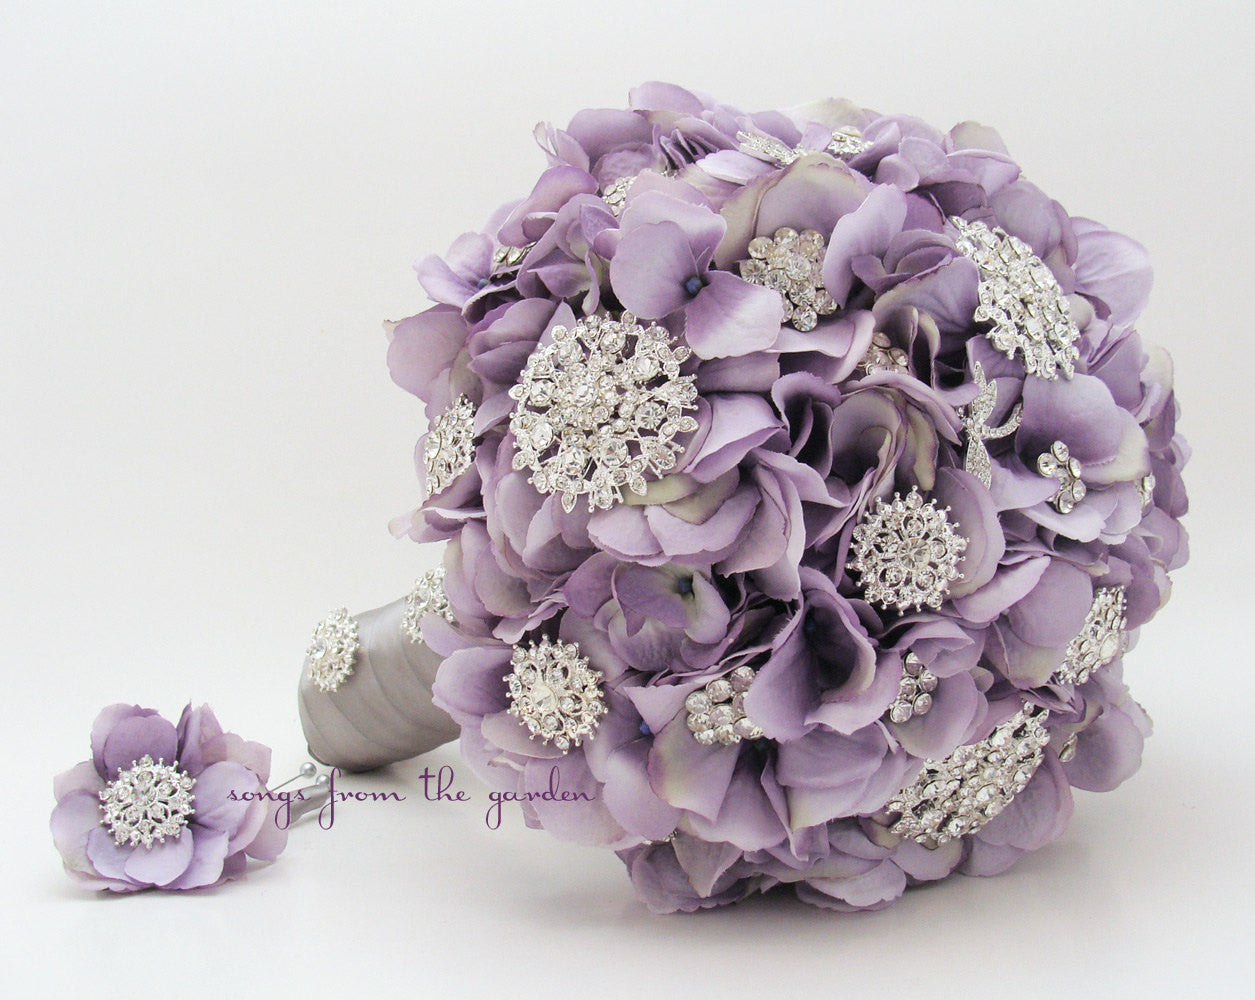 Brooches & Blooms Bridal Bouquet Lavender Silver Bouquet with Groom's Boutonniere